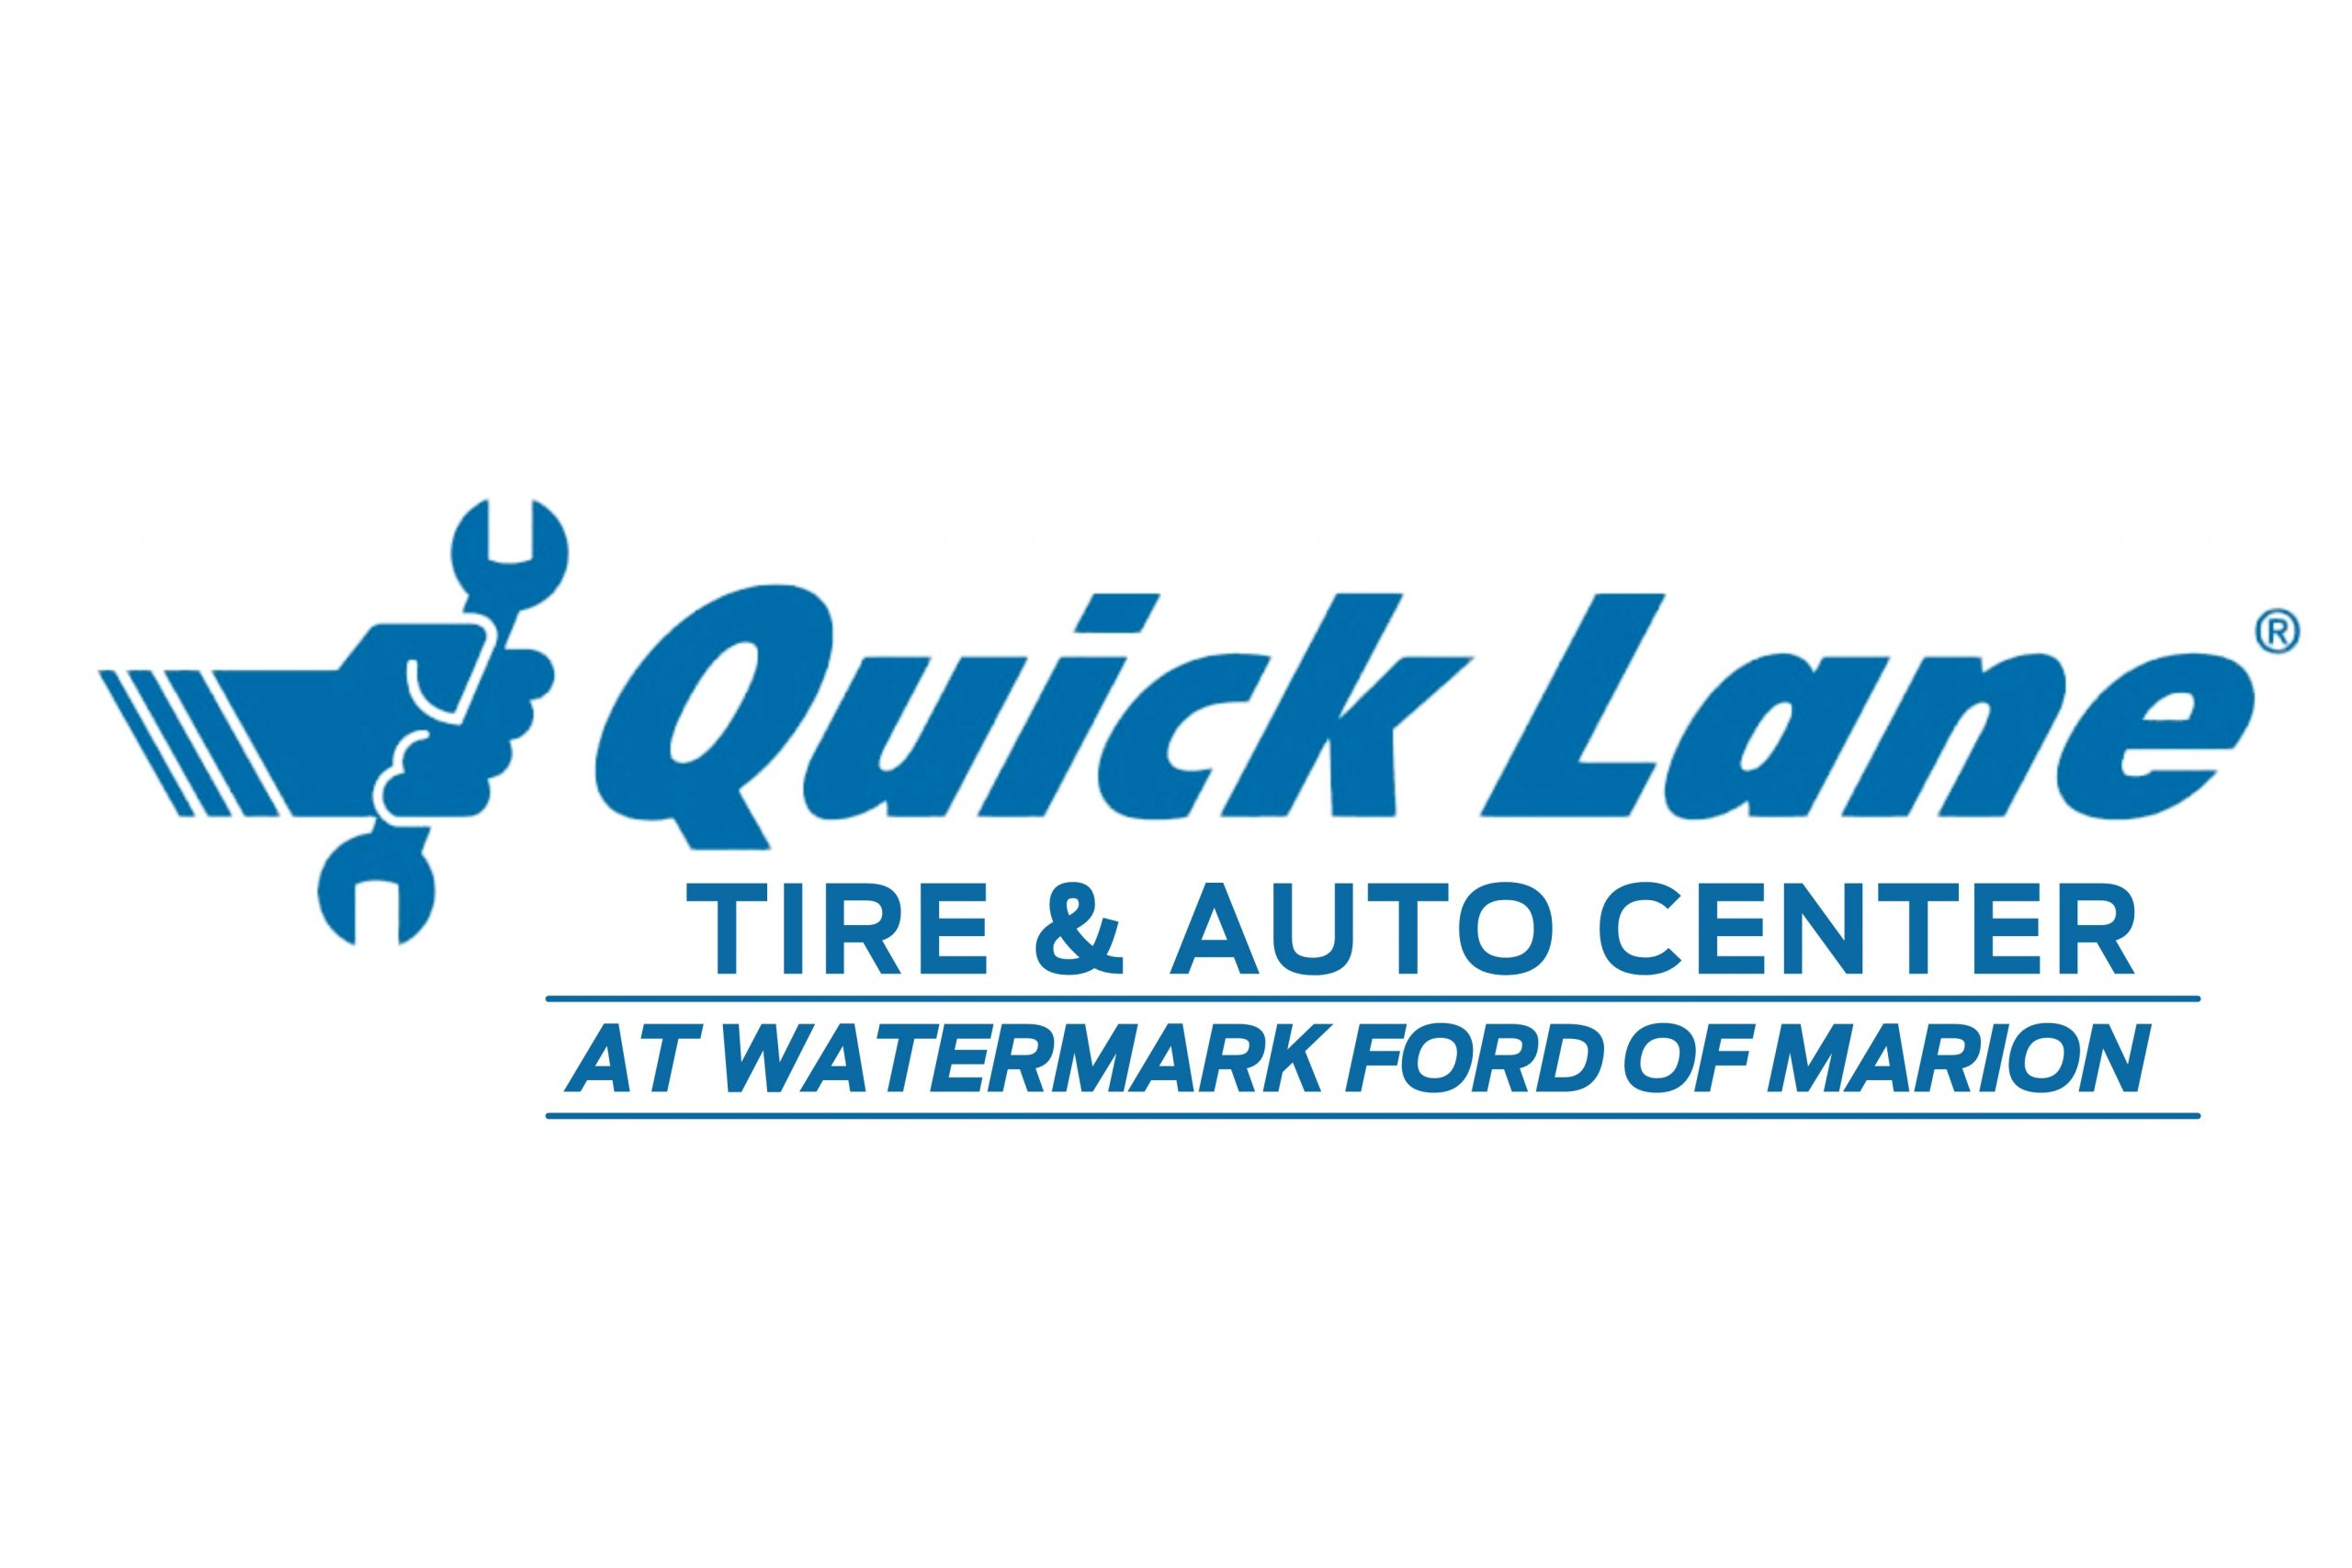 Quick Lane at Watermark Ford of Marion